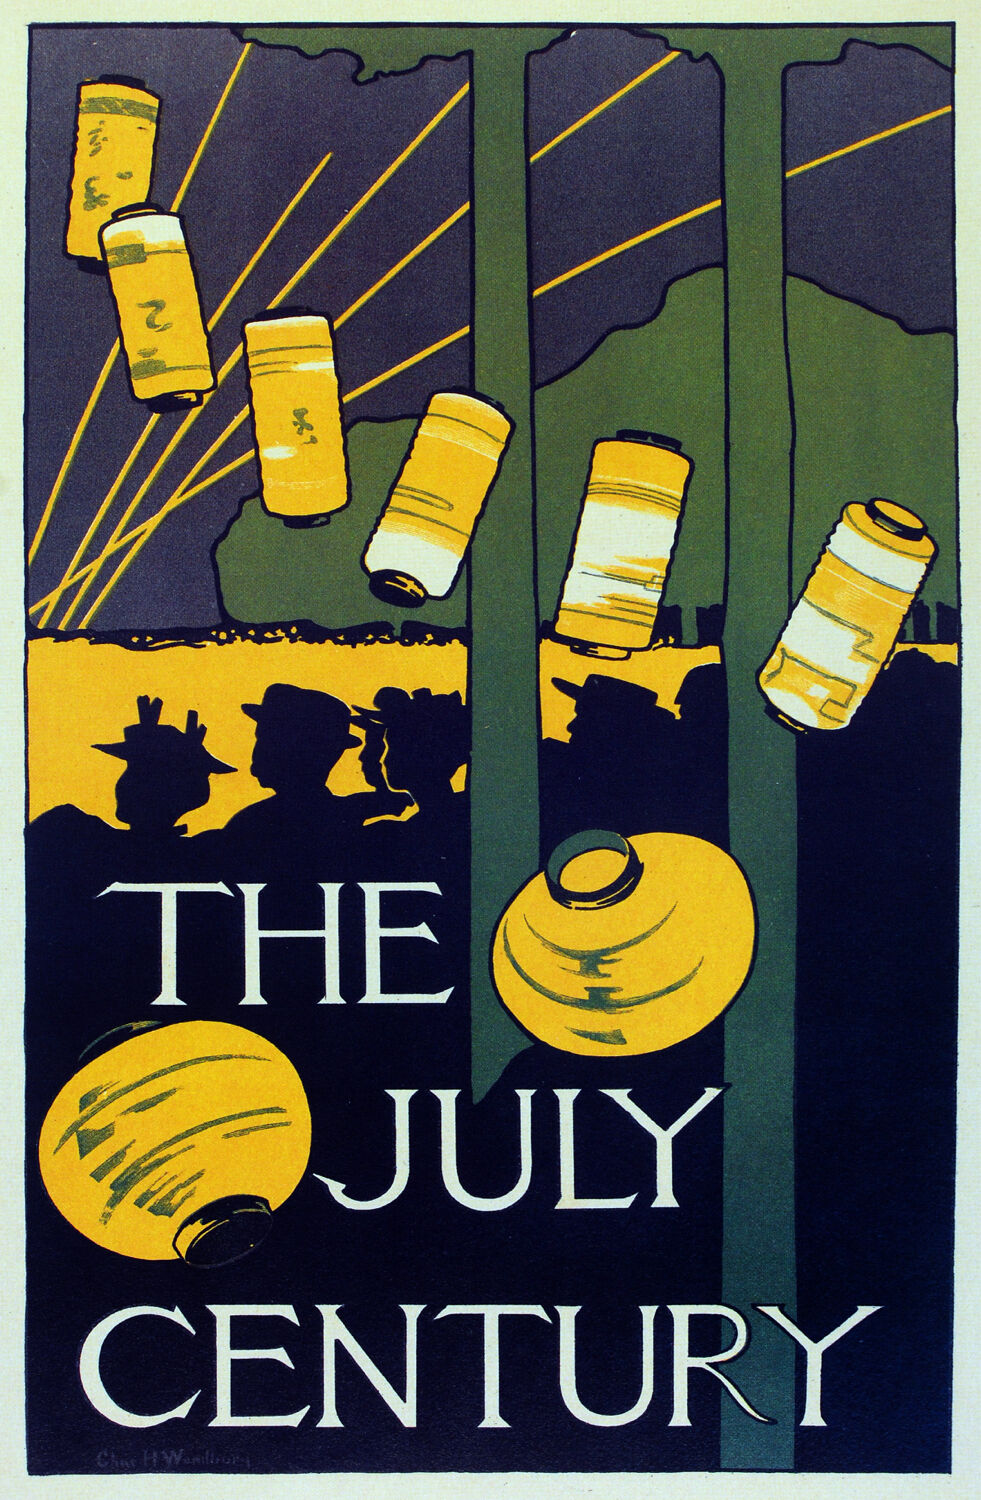 2167 The July century Art Decoration POSTER.Graphics to decorate home office.